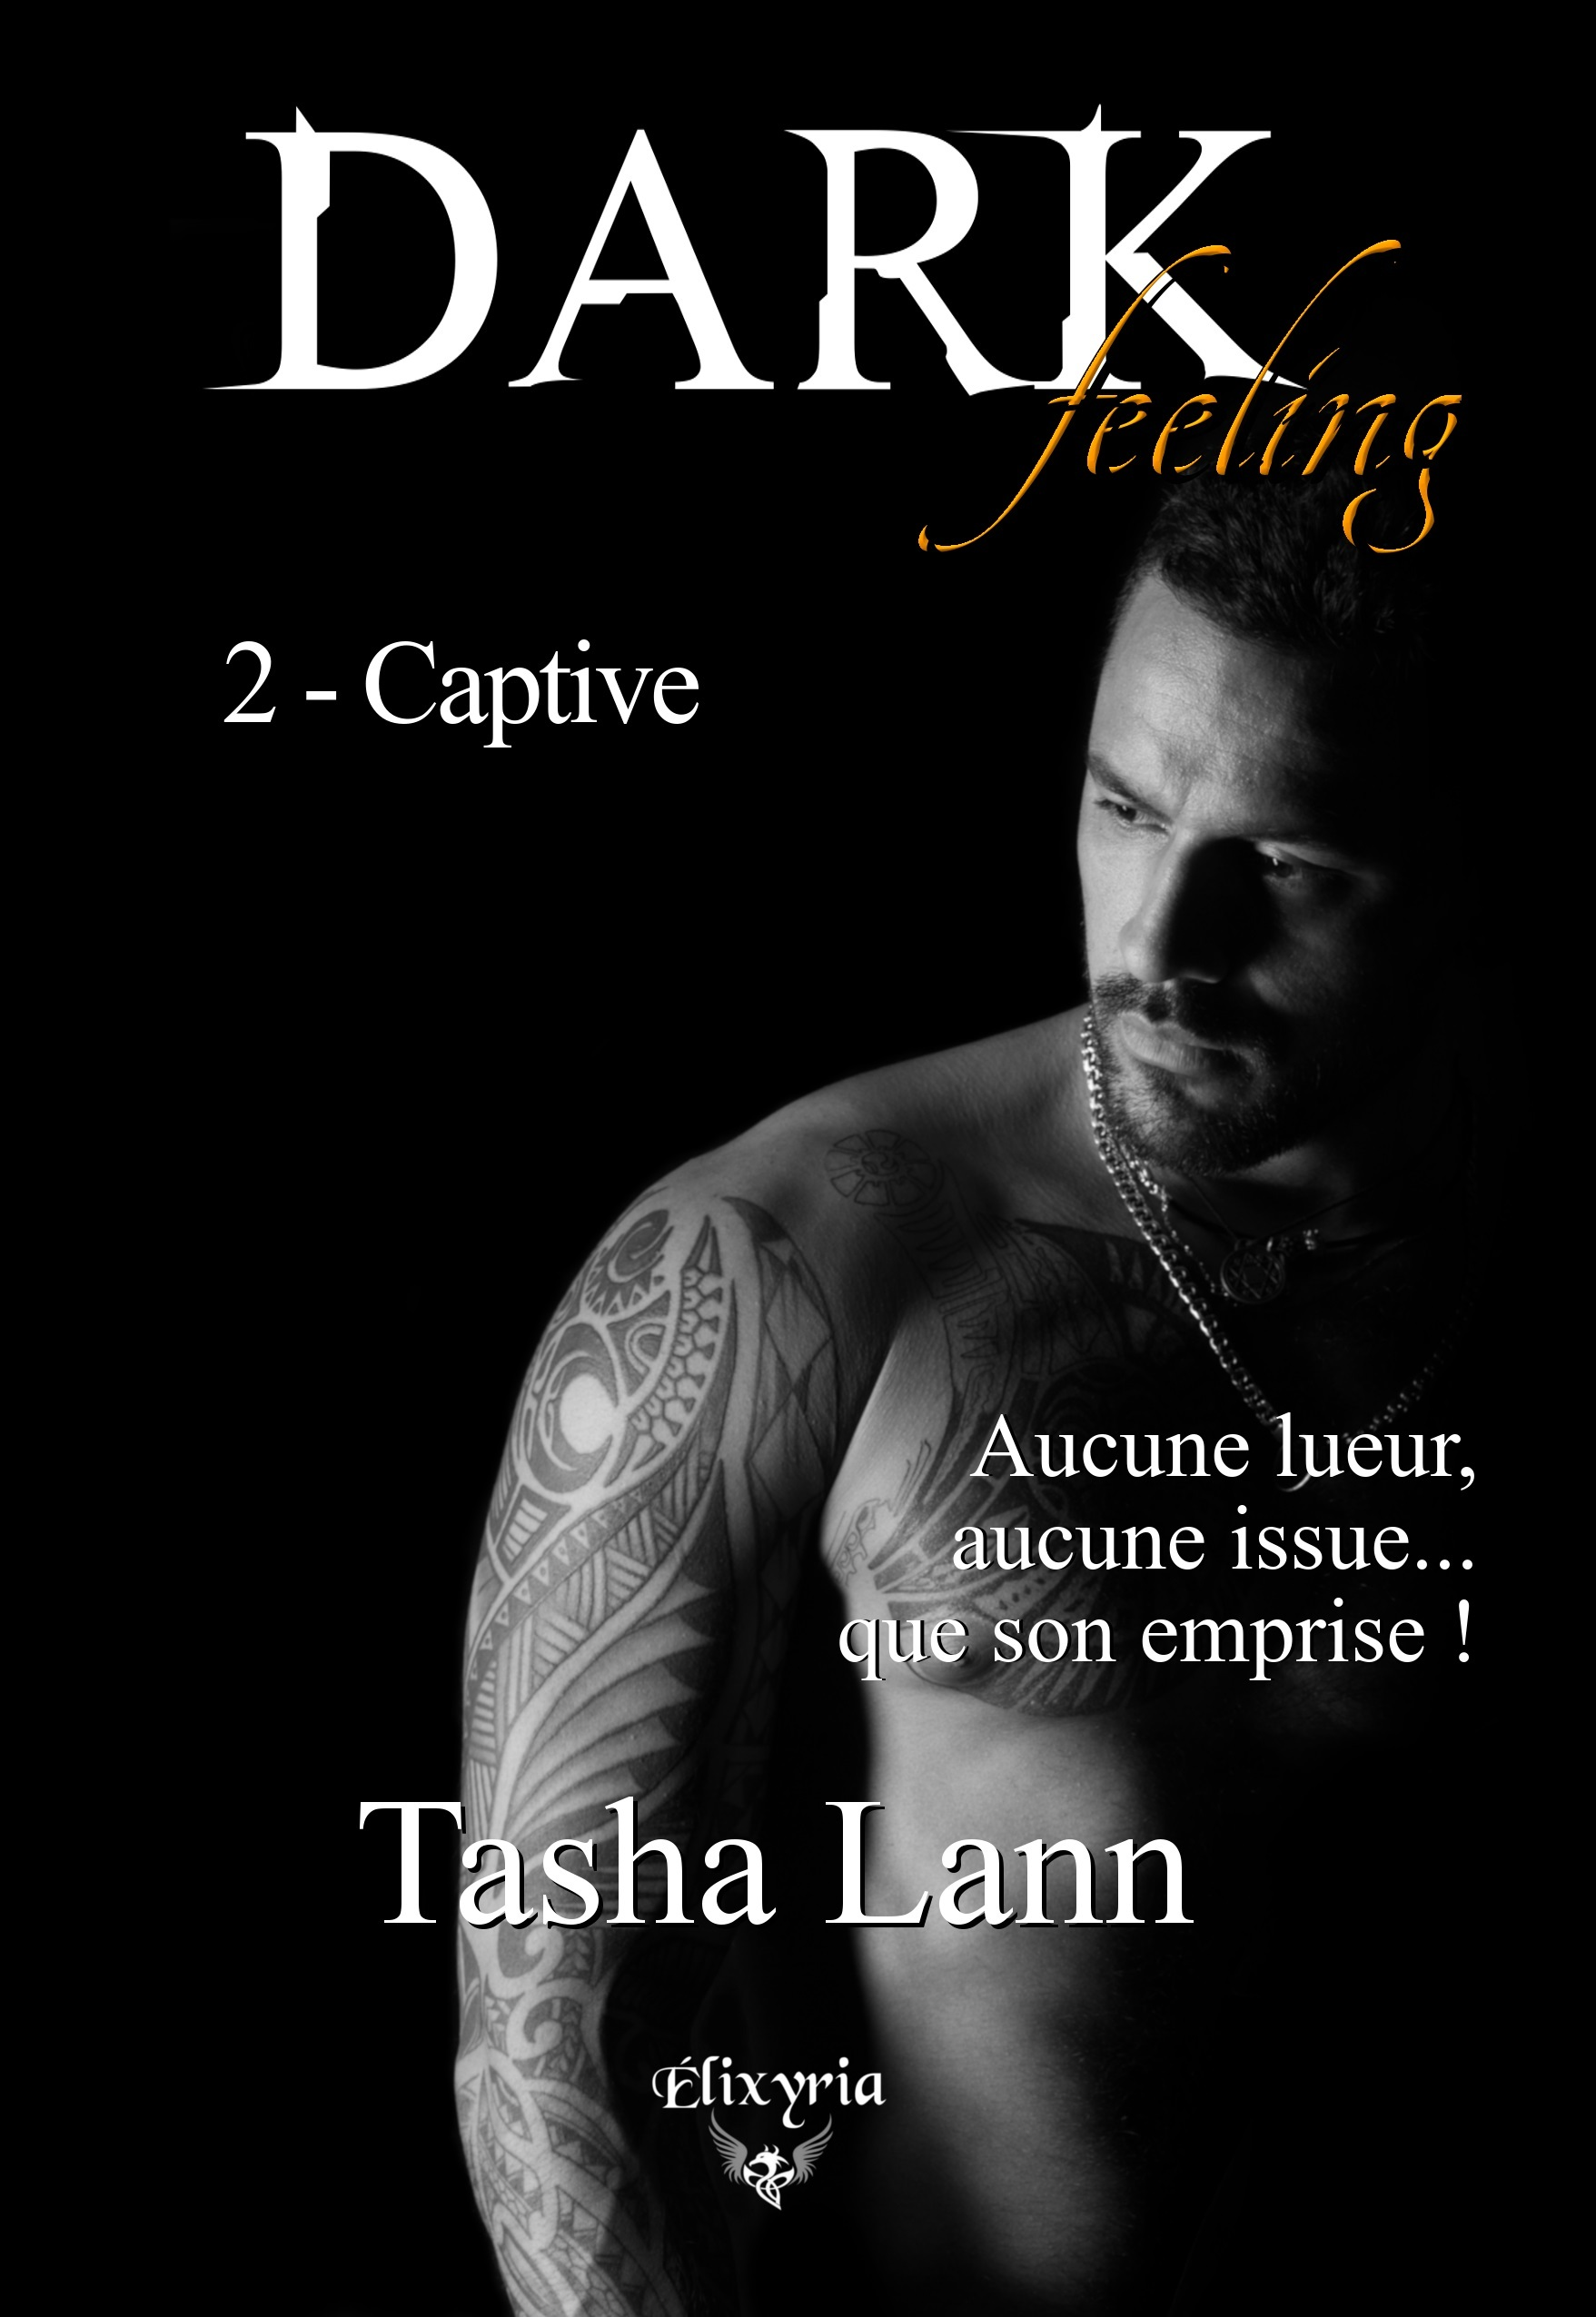 DARK FEELING - 2 - CAPTIVE